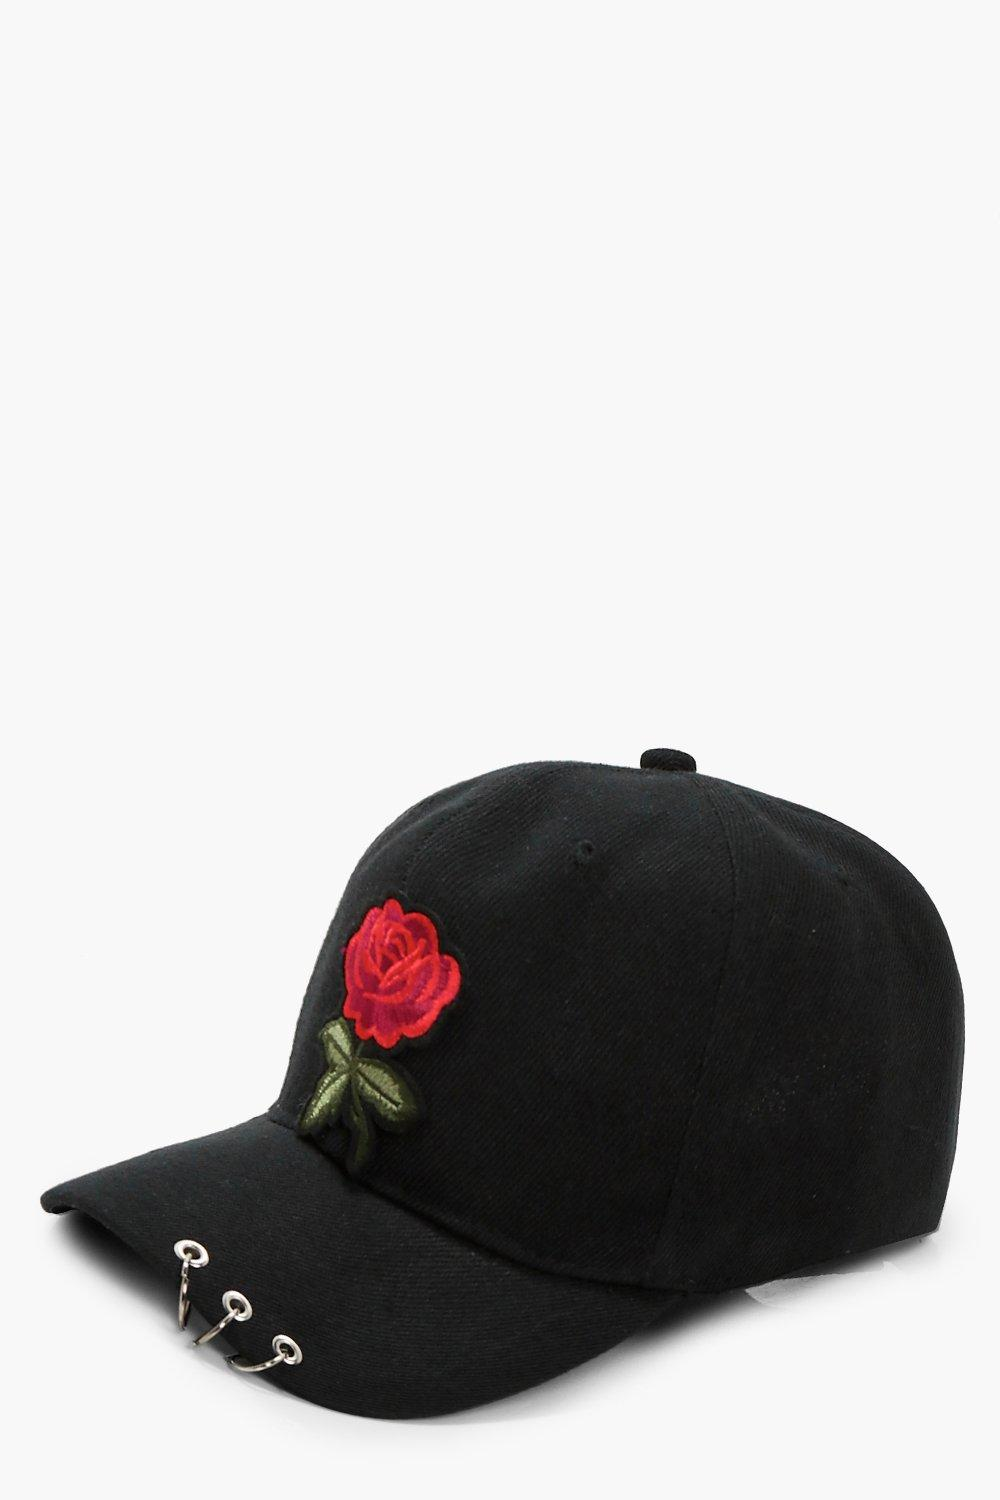 Rose Embroidery Cap - black - Maya Rose Embroidery